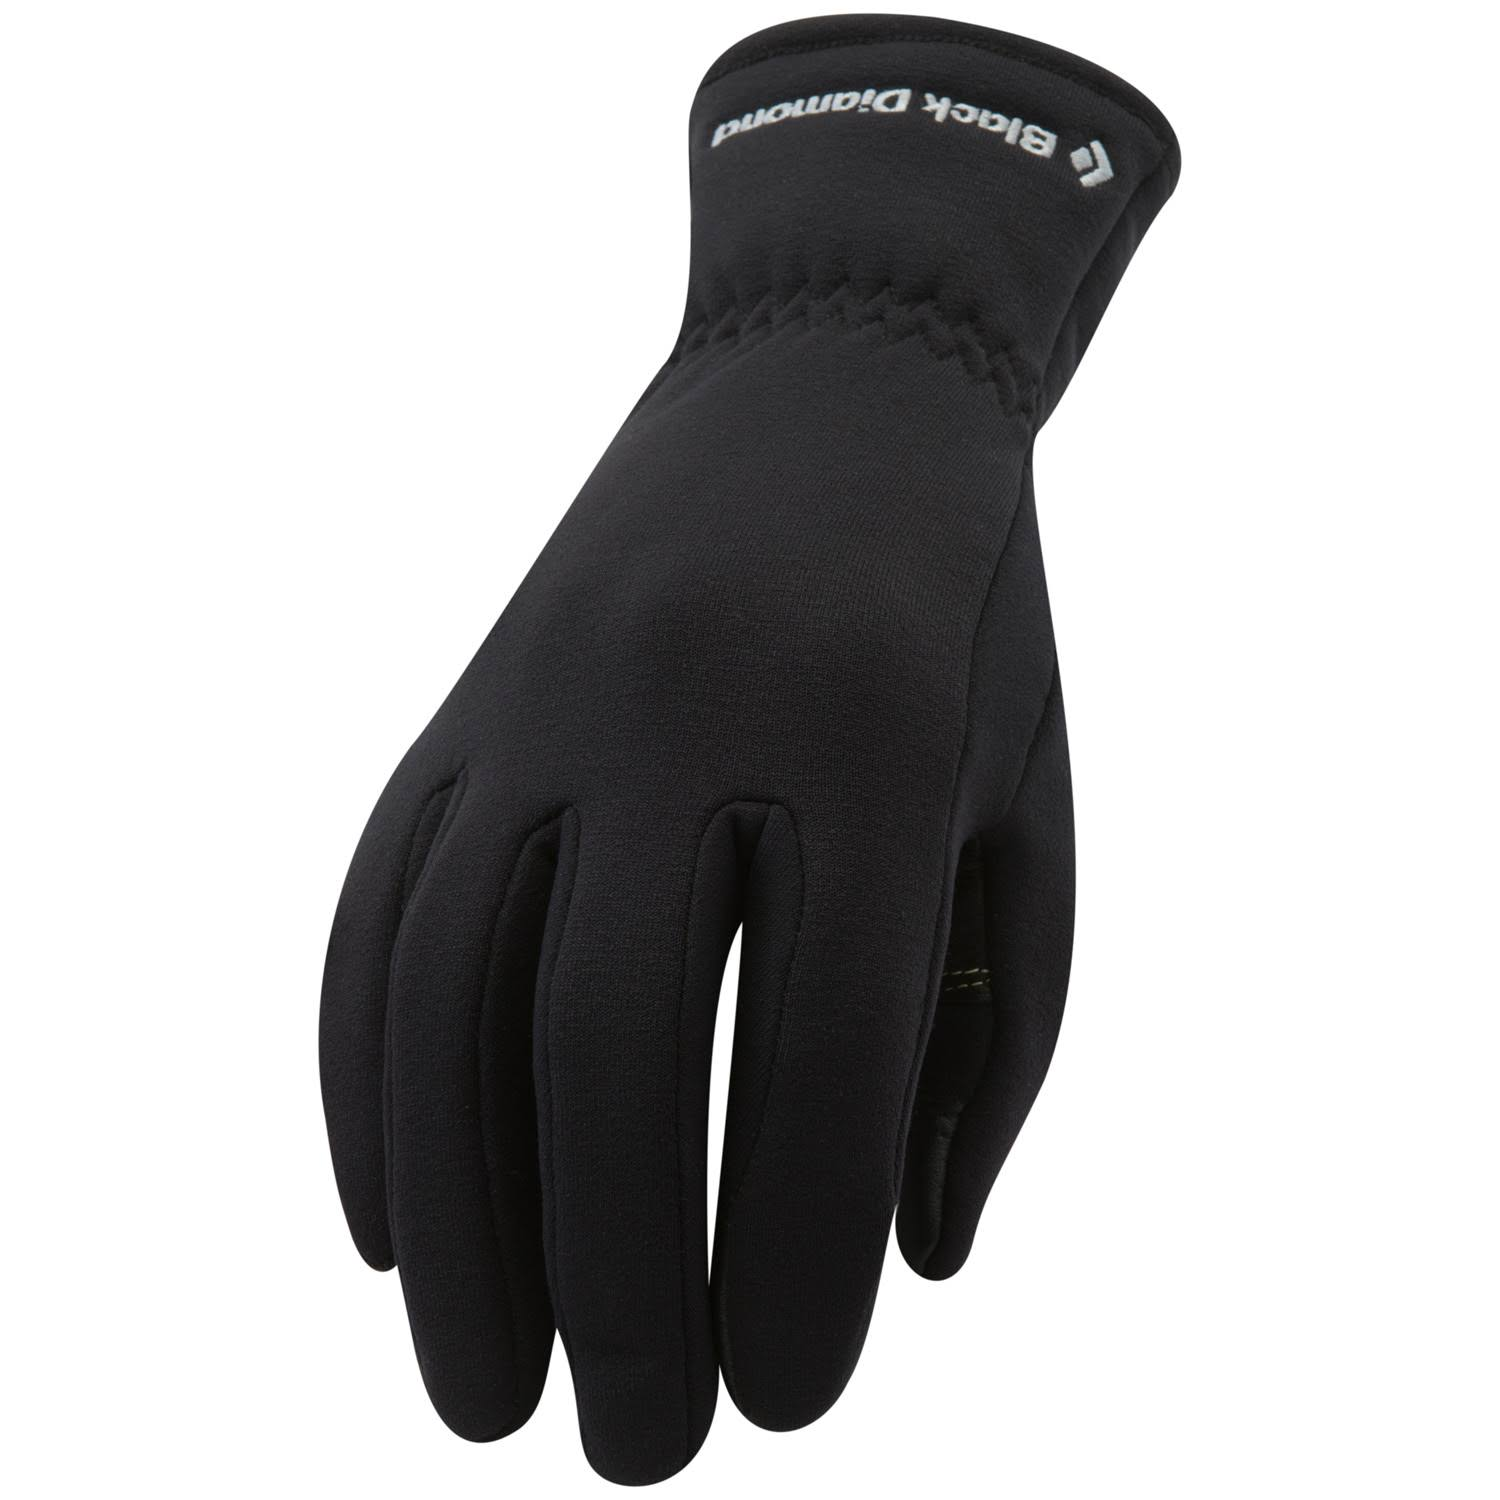 Black Diamond Heavyweight Glove Liners, Black, Medium